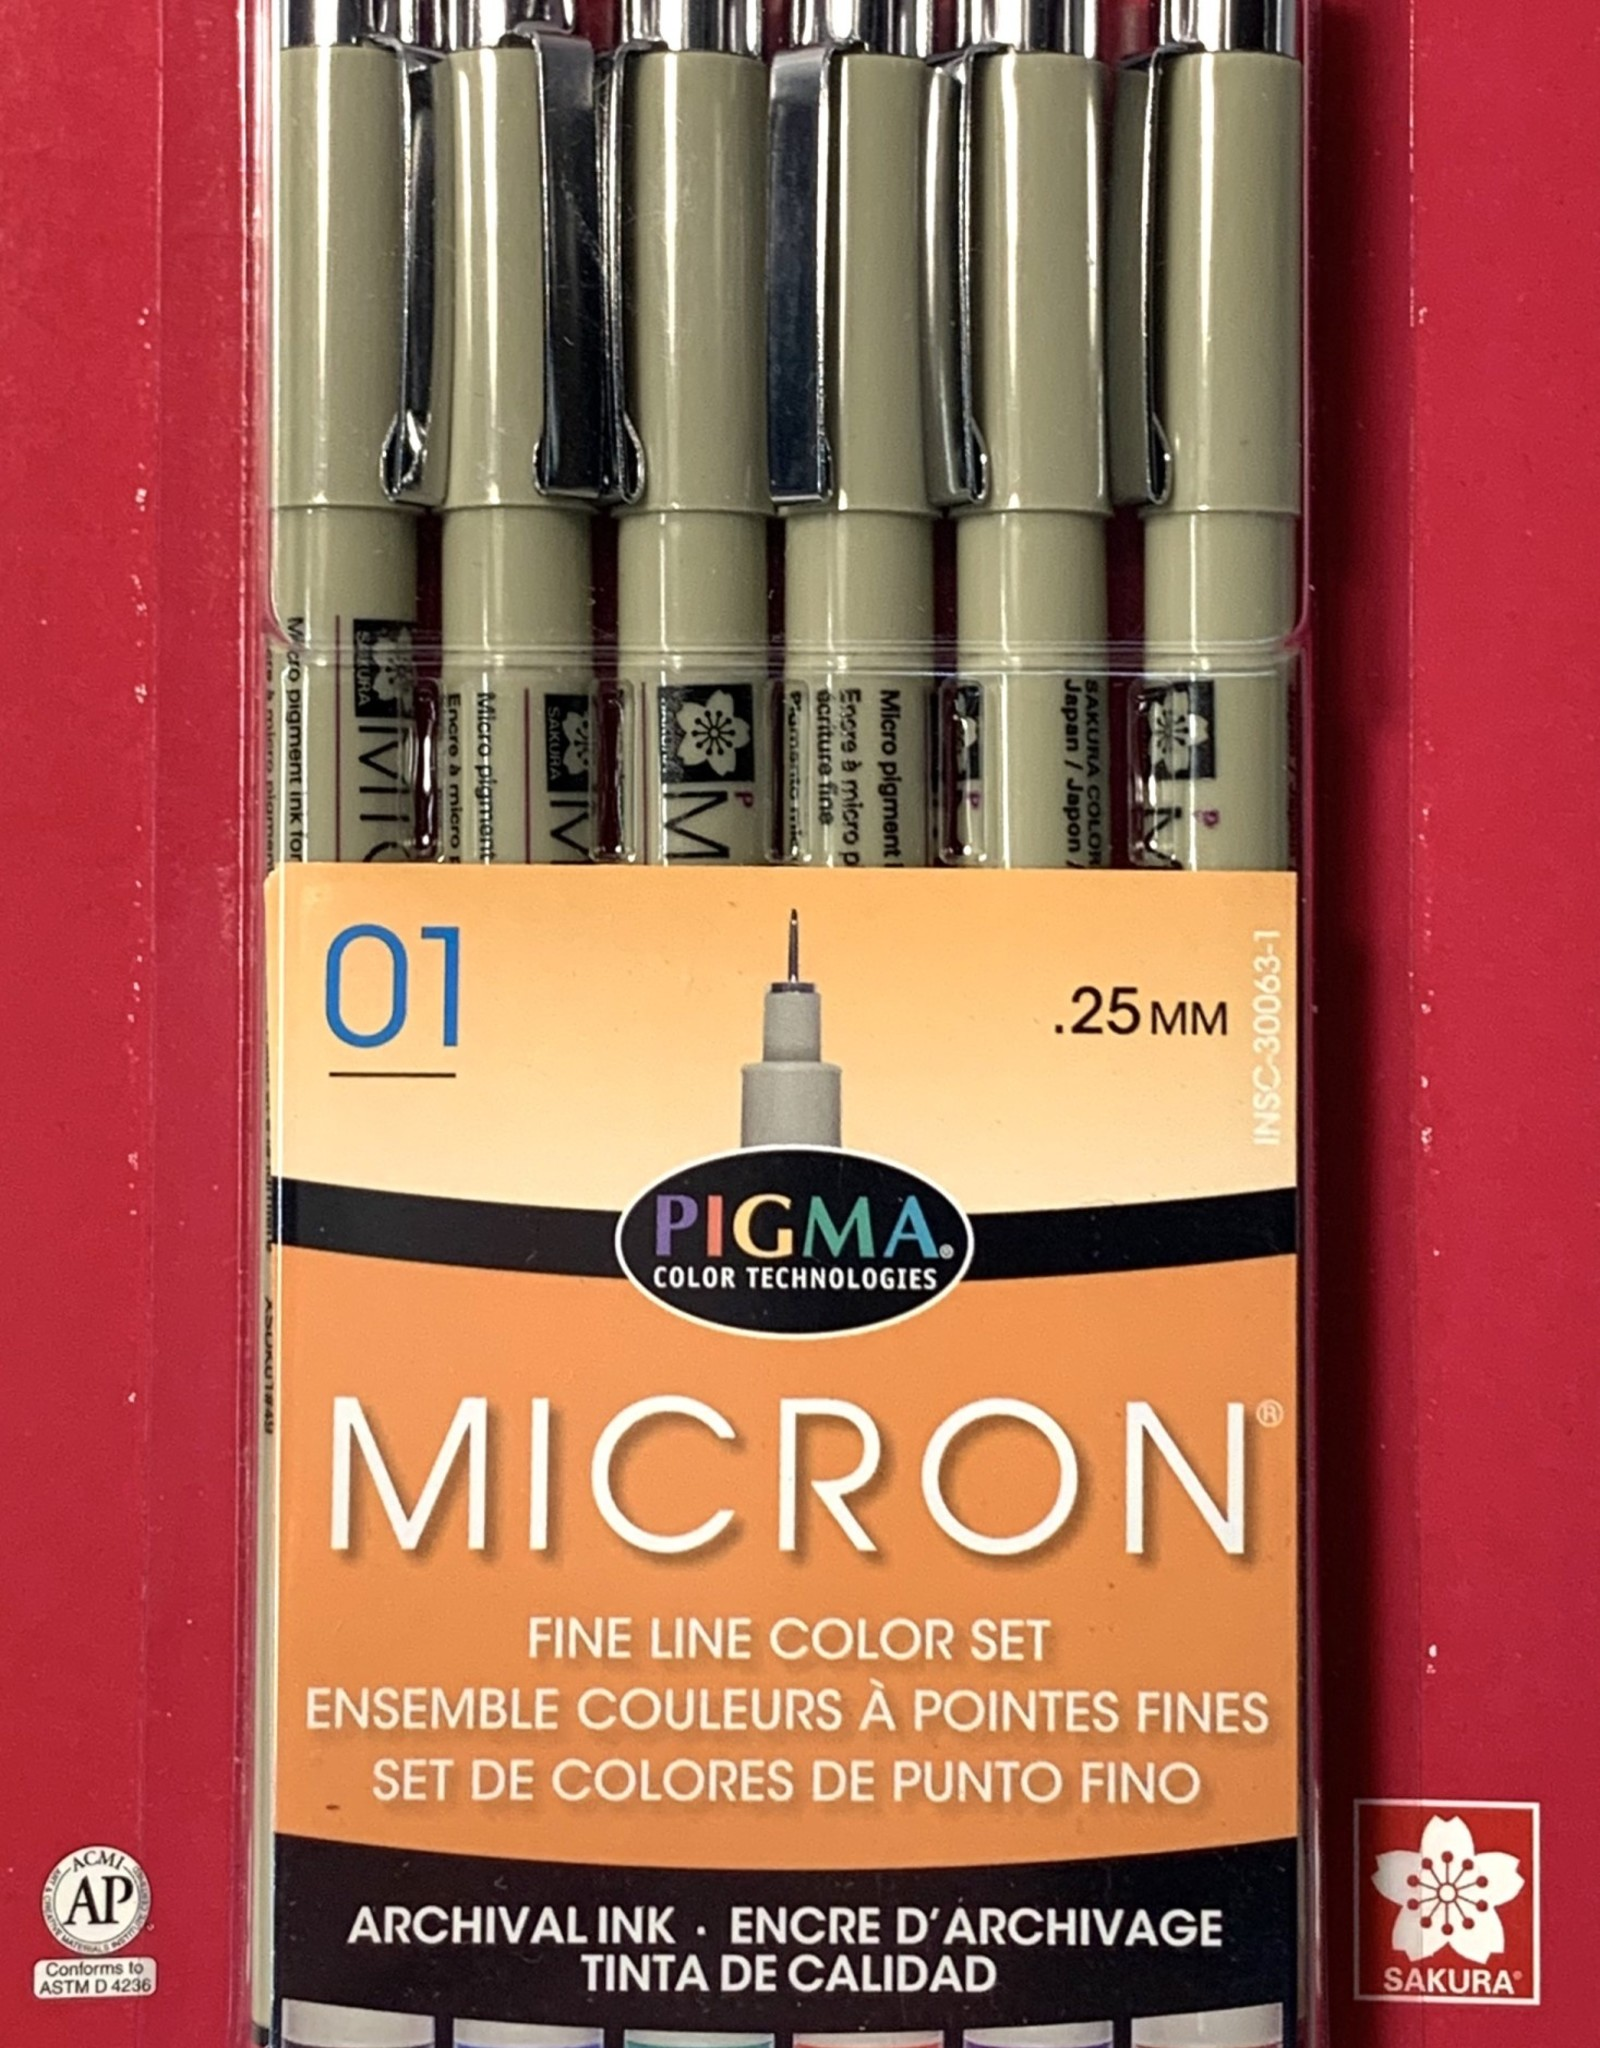 Sakura Micron Pen, Colors 01: 6 Pack with 1 each Black, Red, Blue, Green, Brown, Purple (All in Size 01)